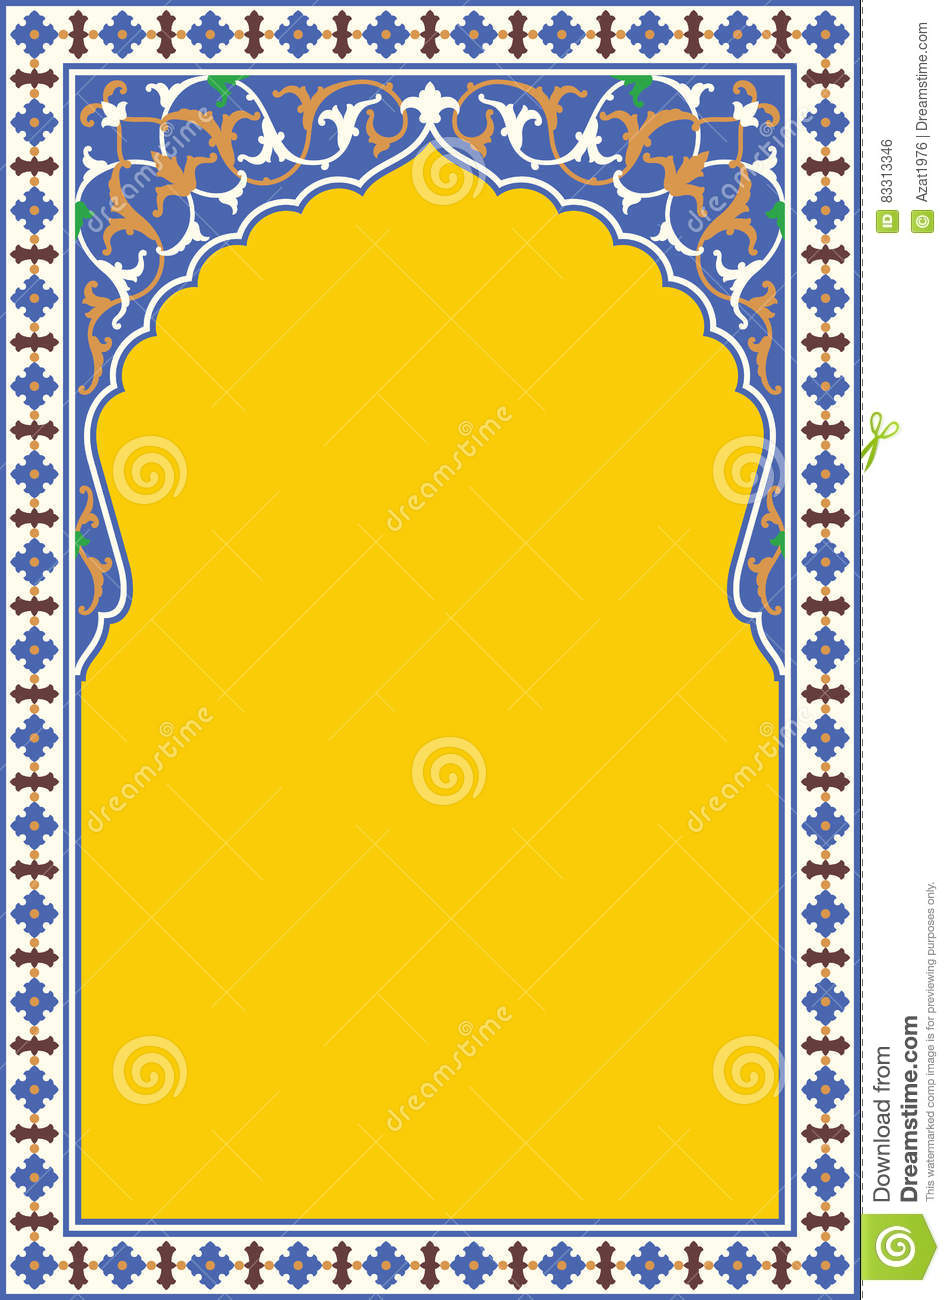 Arabic Floral Arch. Traditional Islamic Background. Mosque decoration element.